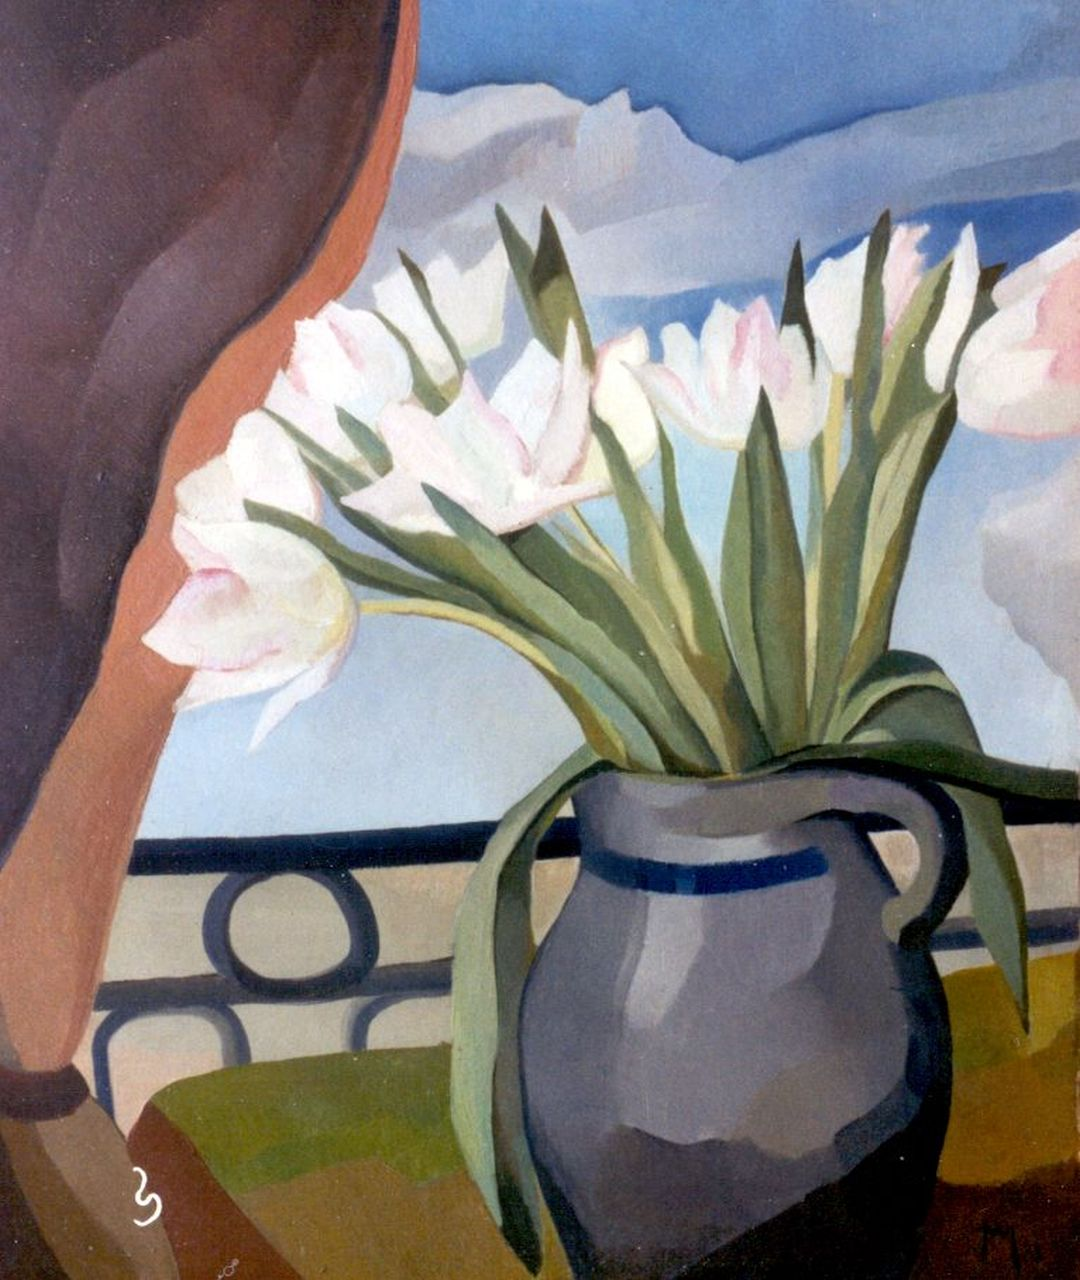 Hans van Mastenbroek | Tulips in a jug, oil on painter's board, 58.6 x 49.2 cm, signed l.r. mon. and painted '32